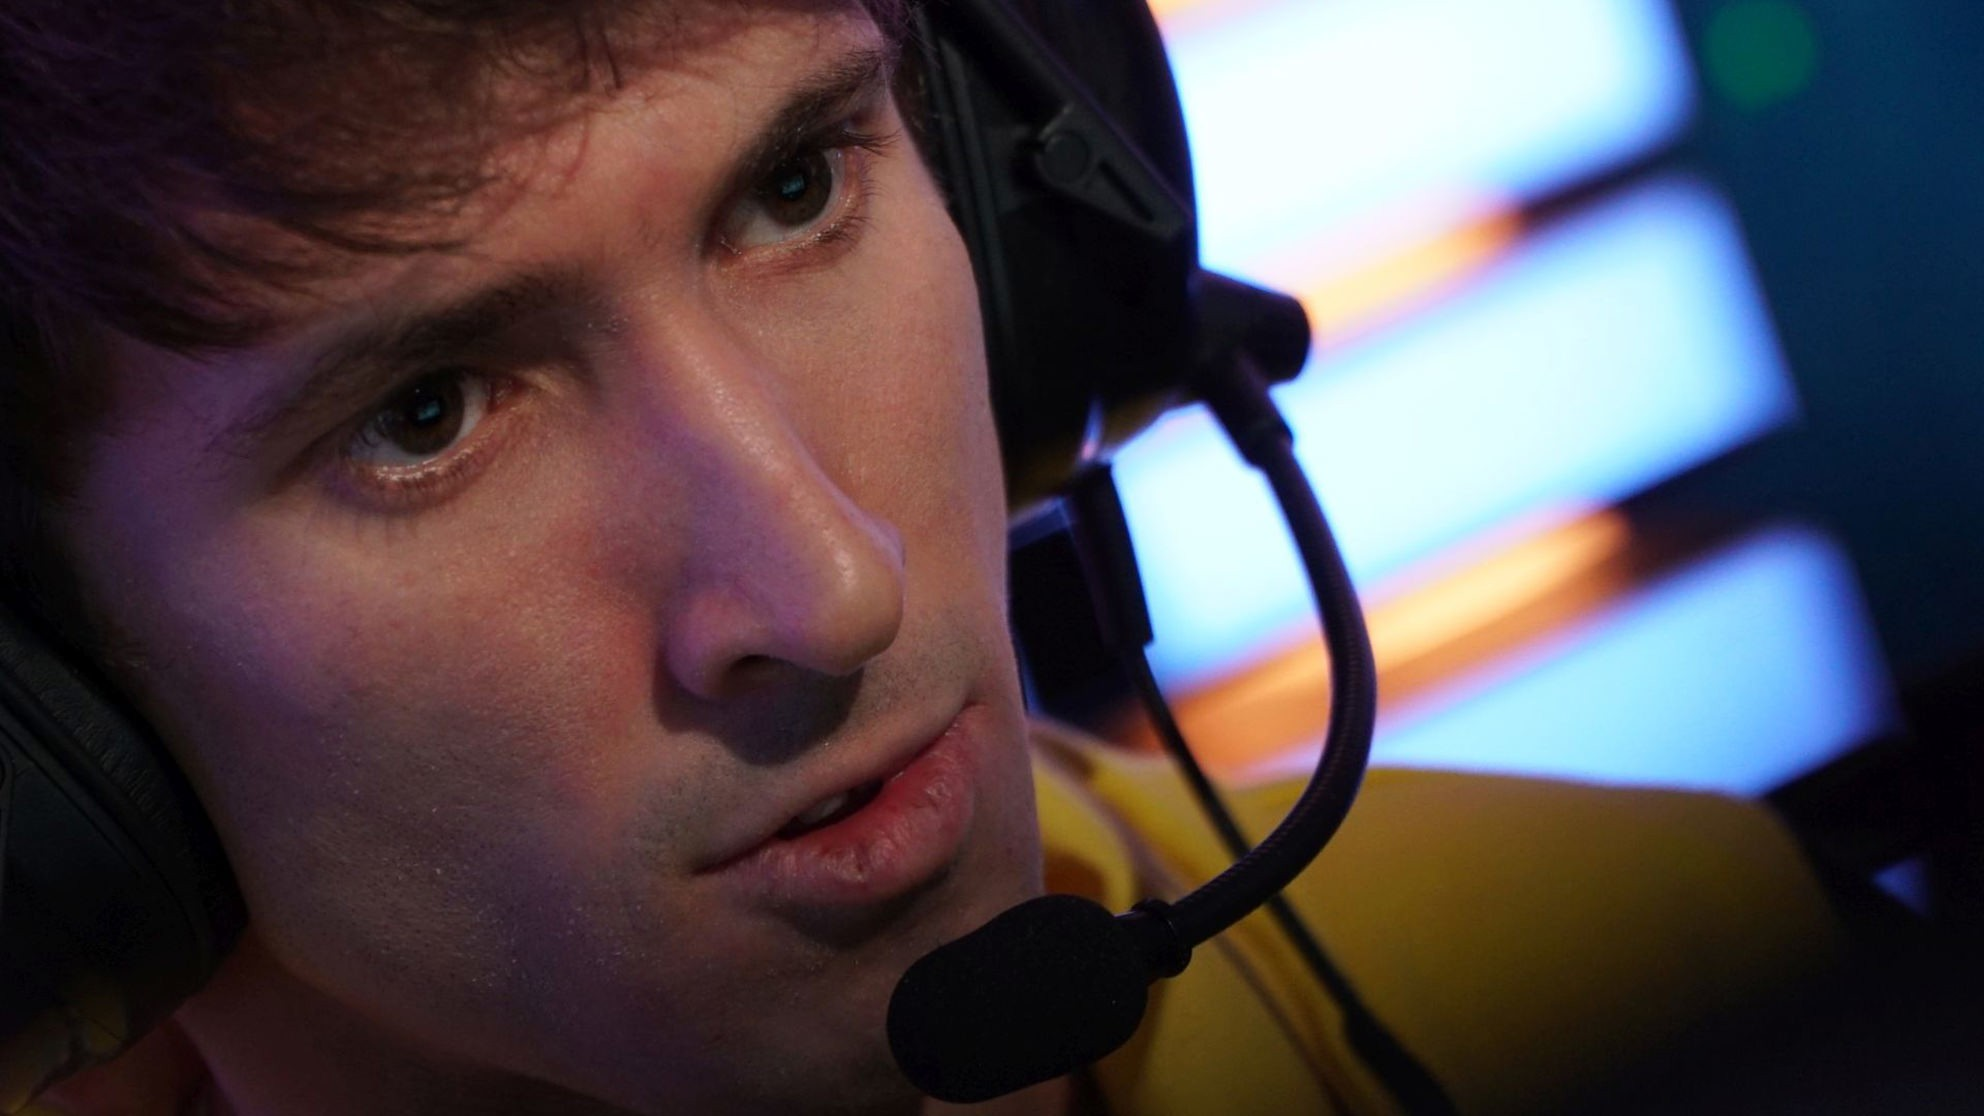 Dendi joins Team Secret as a stand-in